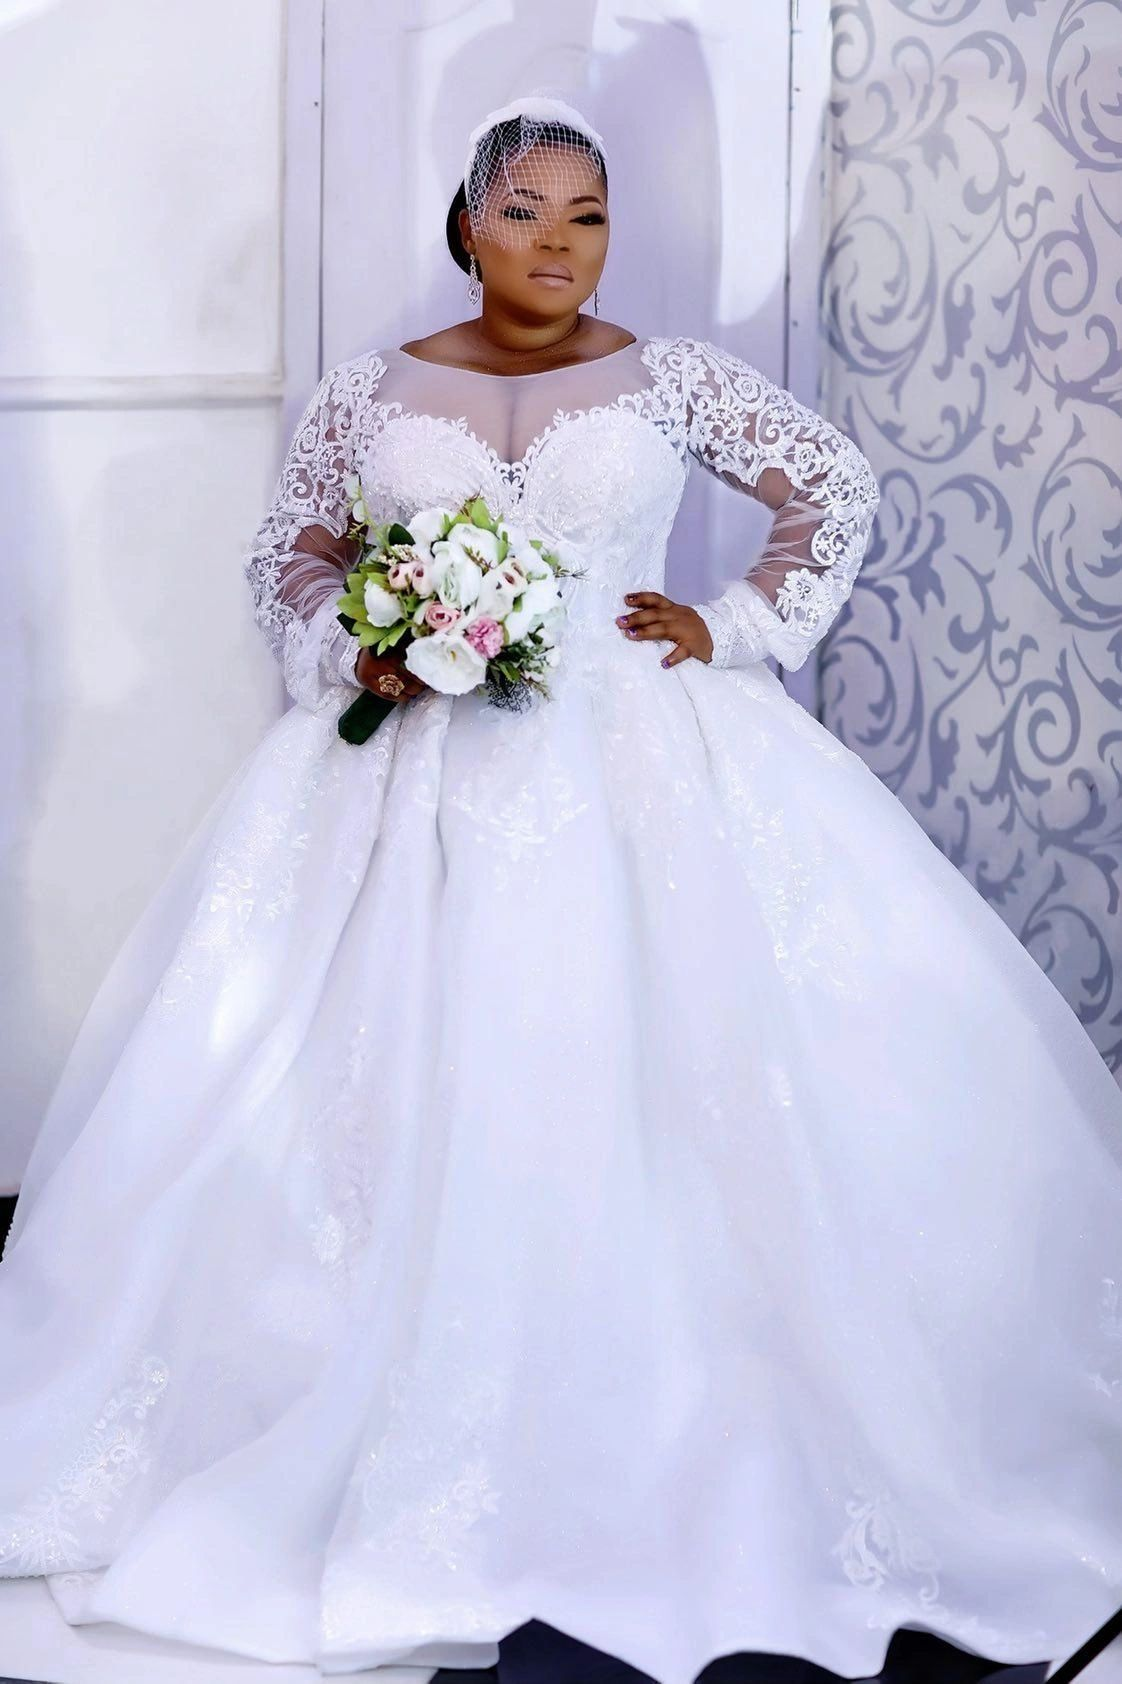 Yes I Do Bridal Yes I Do Bridal Wedding Gowns Bridal Accessories